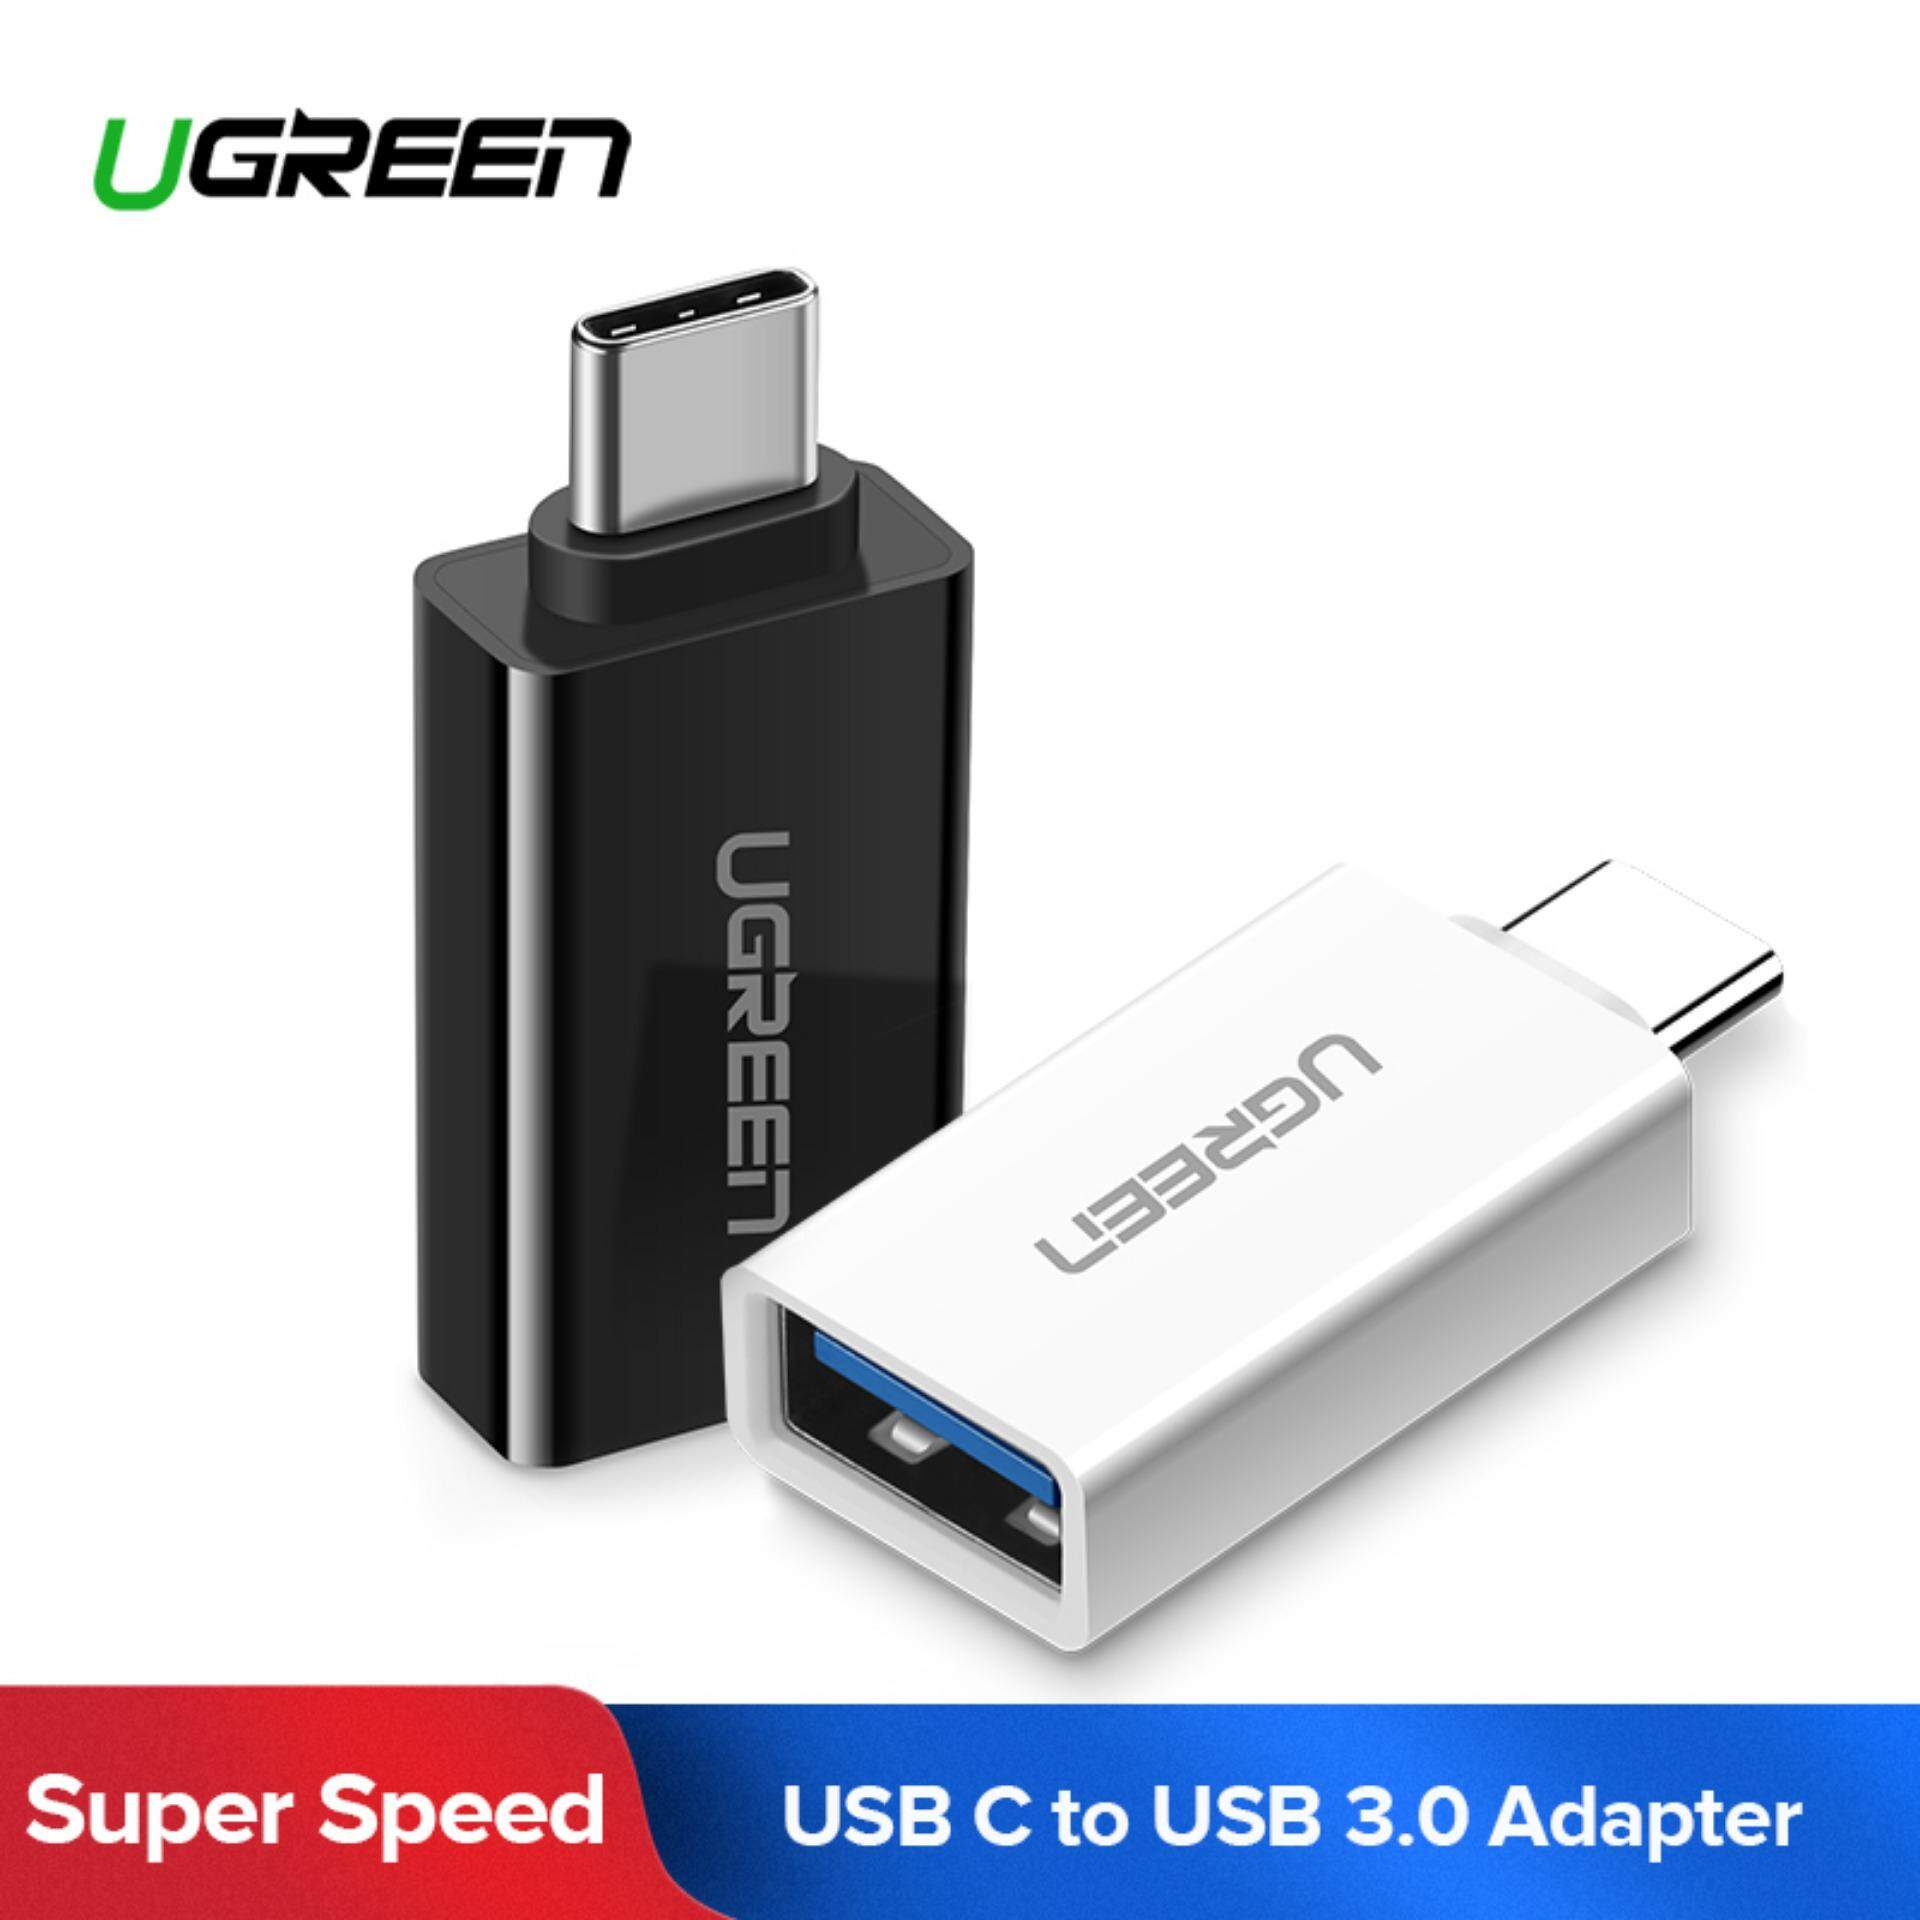 Ugreen Type C Adapter Type-C To Usb 3.0 Otg Cable Adapter Usb C Converter For Huawei P20, One Plus 6 5 Xiaomi Mi 8 Huawei Usb C Otg Adapter By Ugreen Flagship Store.